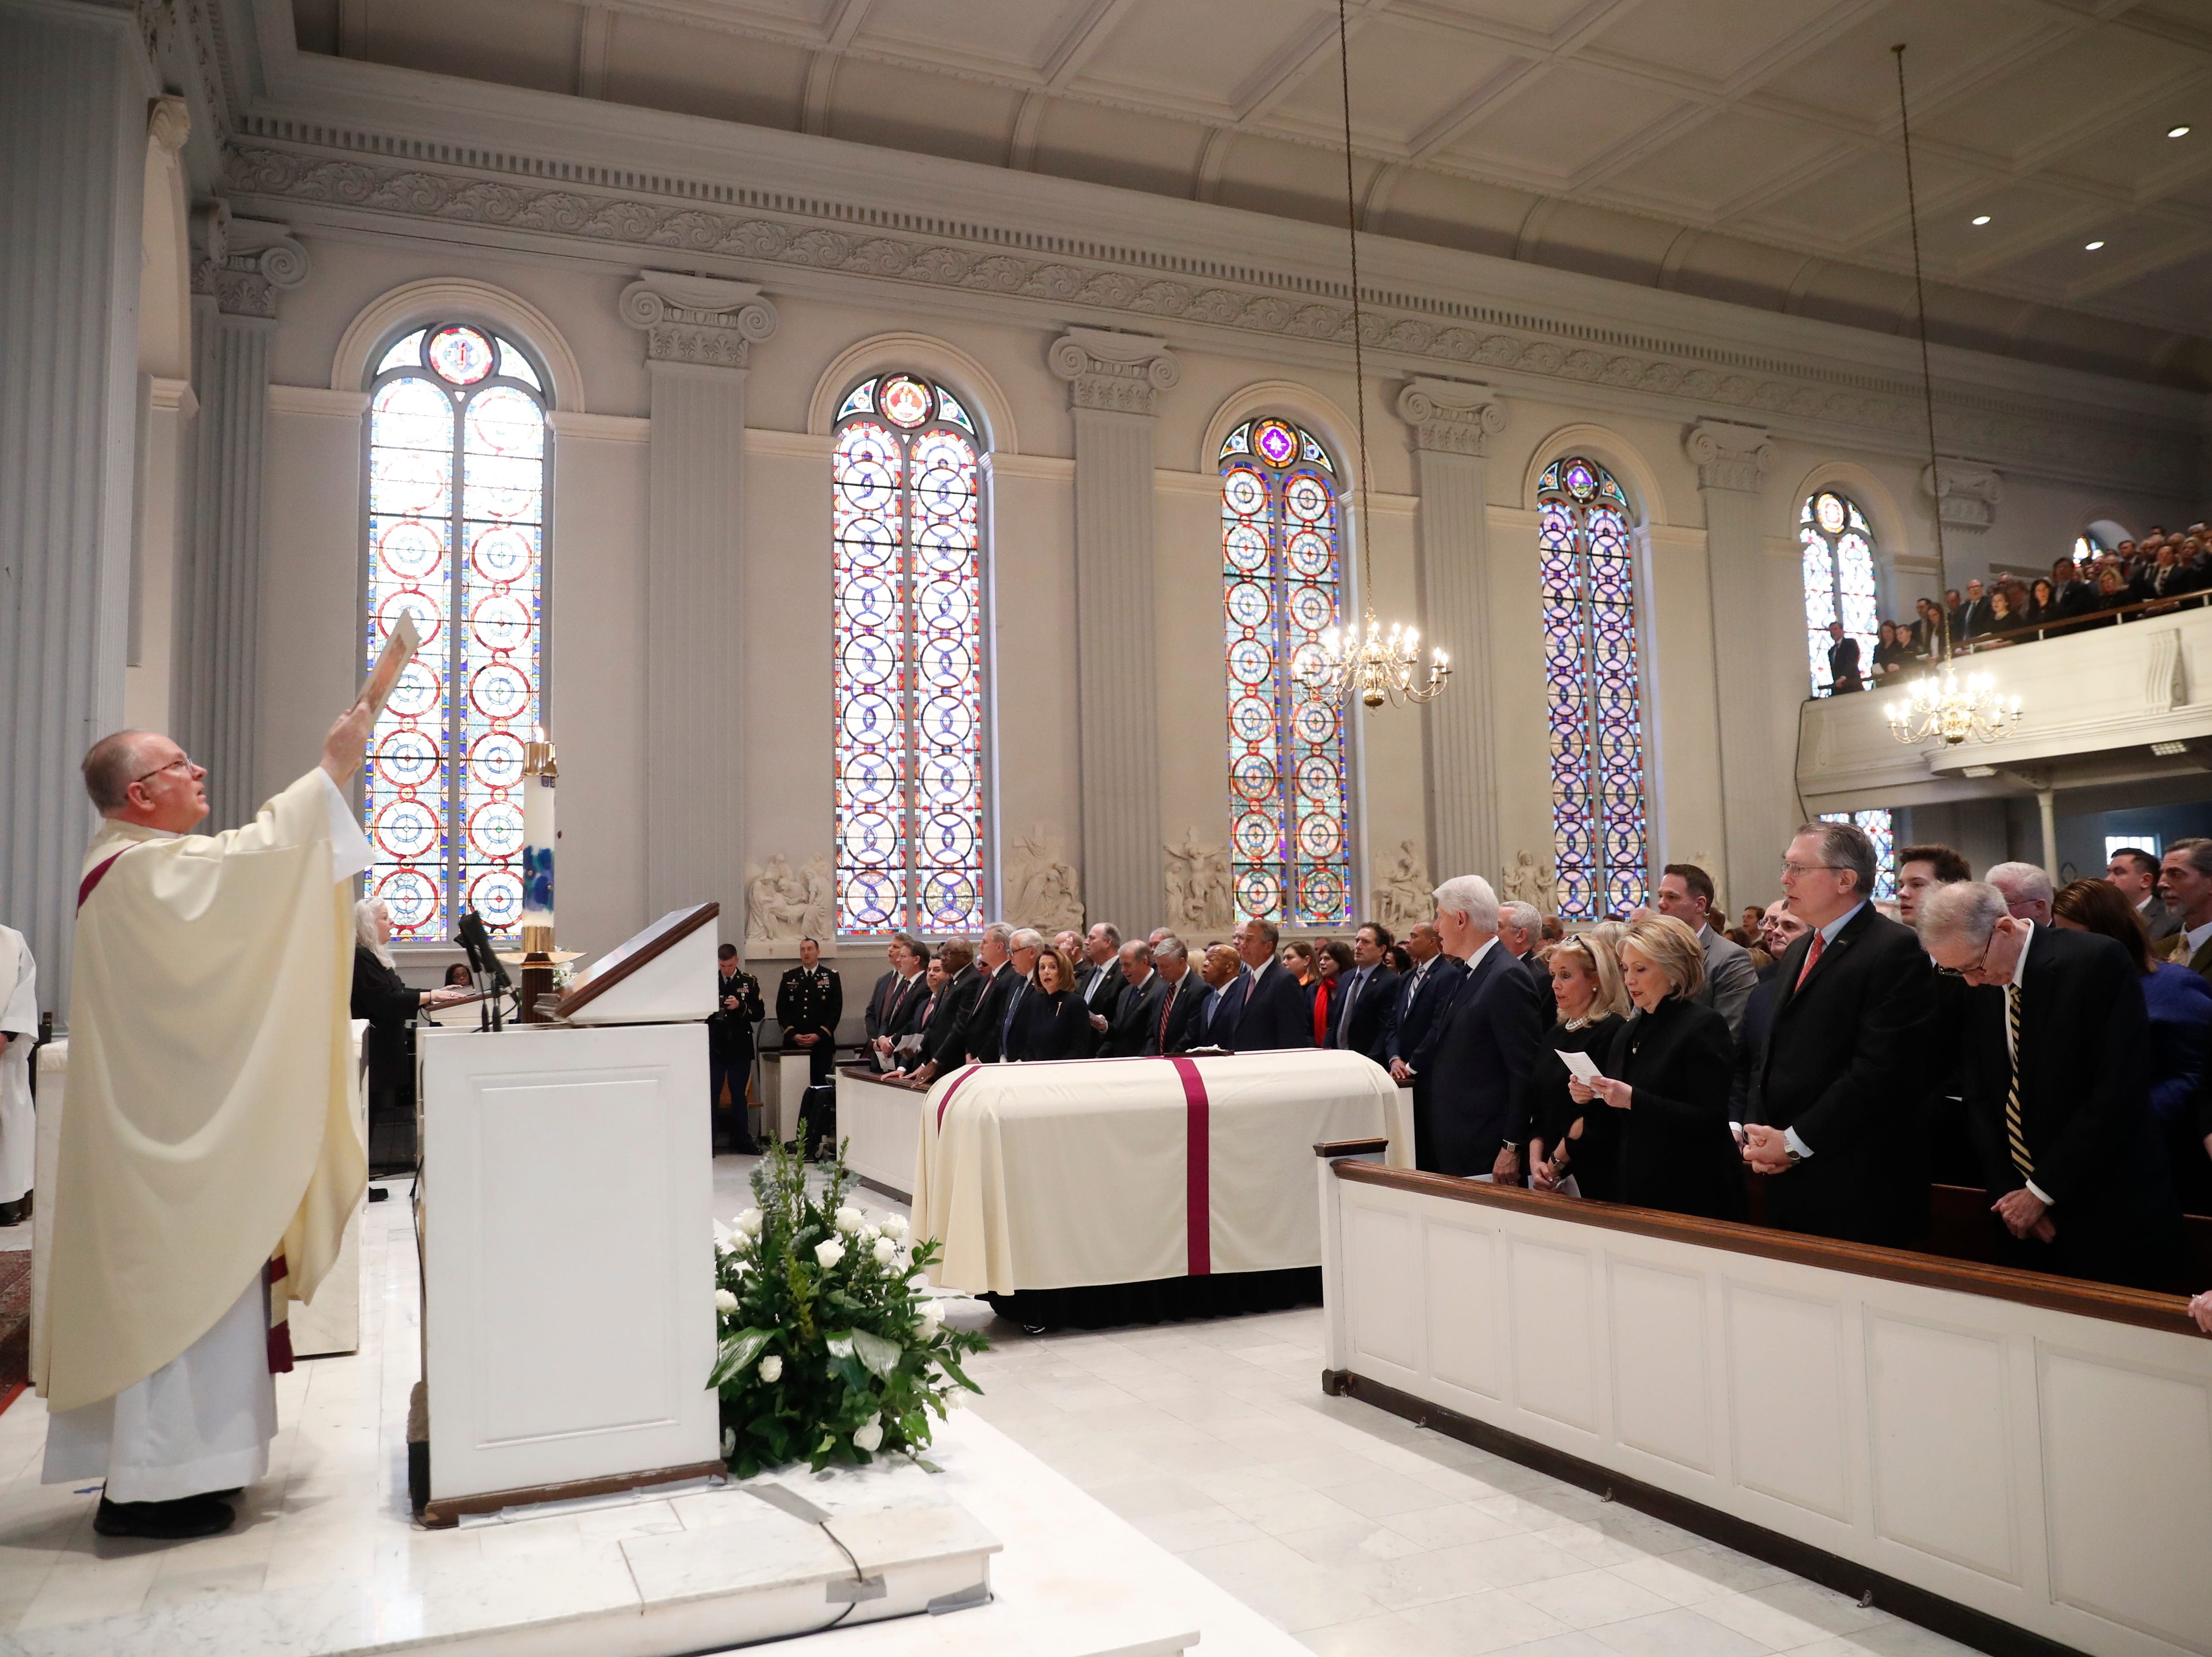 Rev. Patrick Conroy holds up a Bible during the homily at the funeral for former Rep. John Dingell.